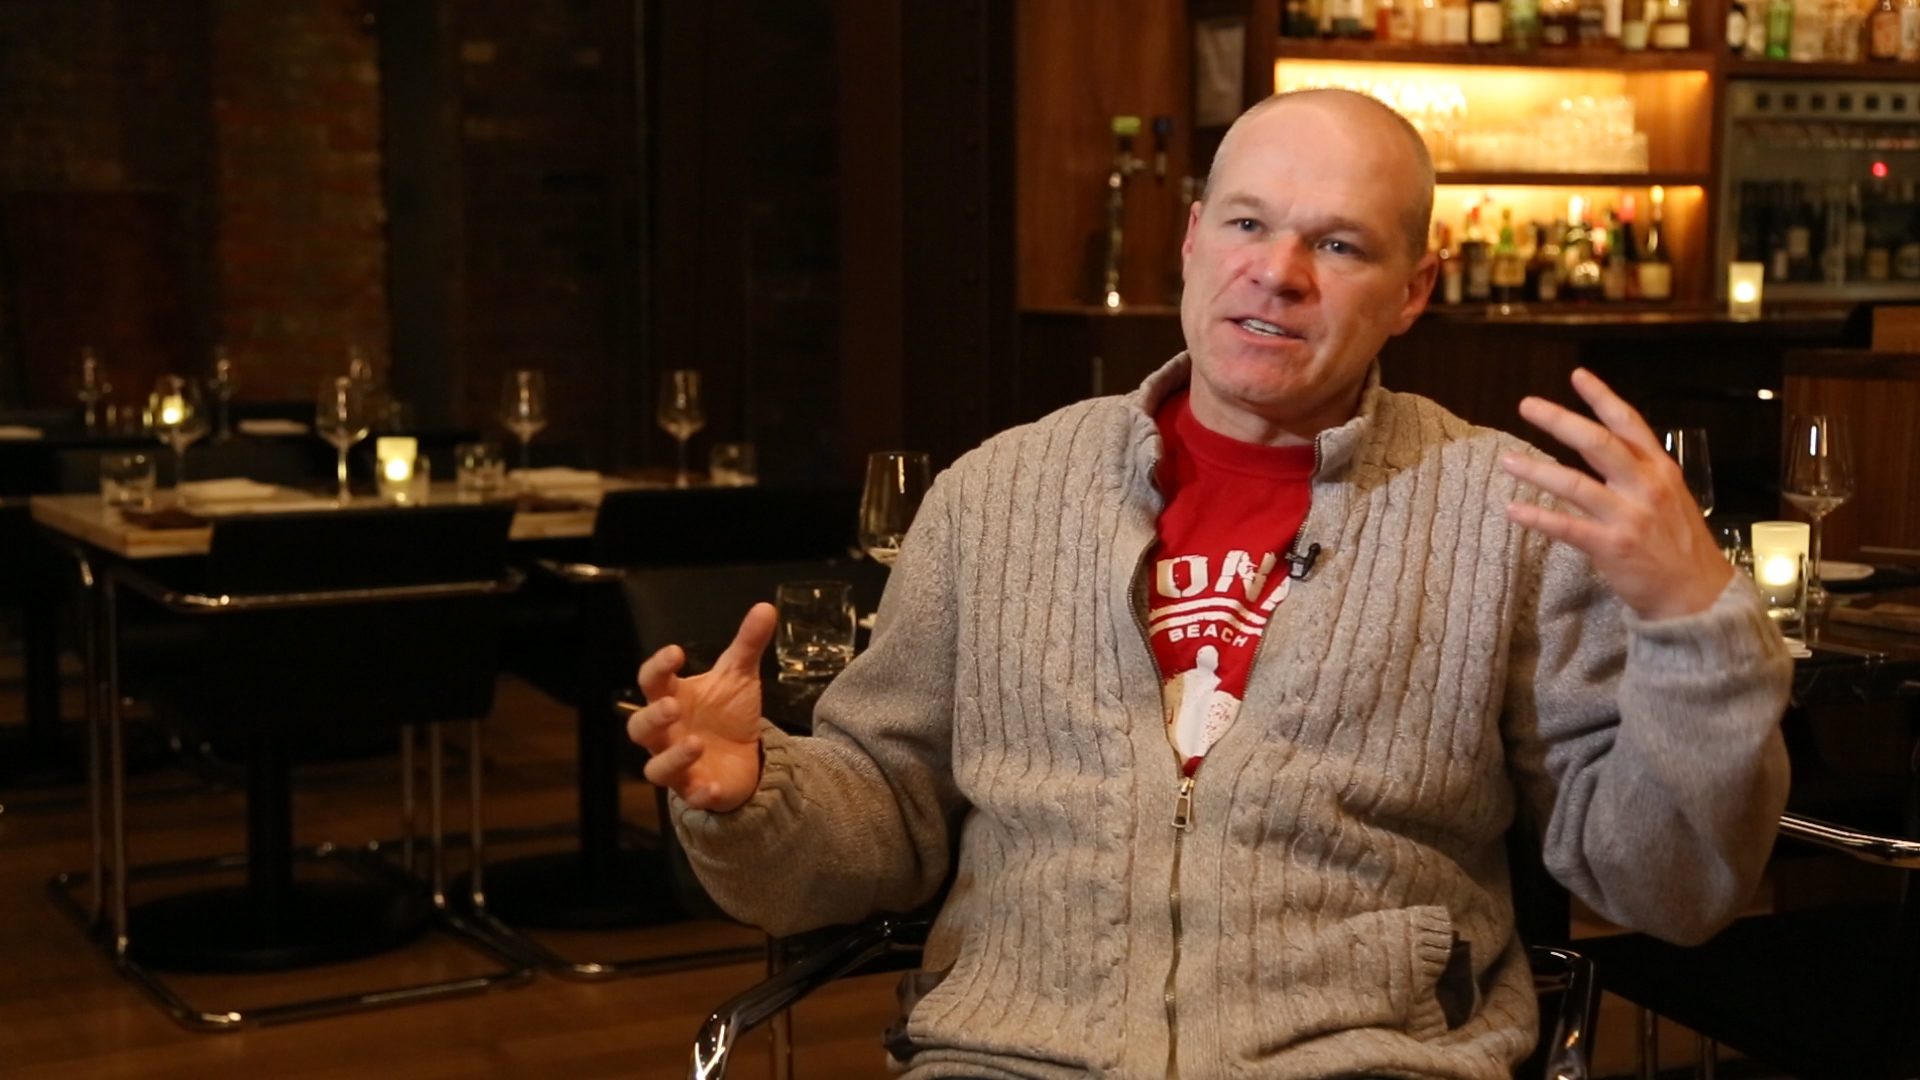 Uwe Boll interviewed amid his Bauhaus restaurant venture in Fuck You All: The Uwe Boll Story (2019)